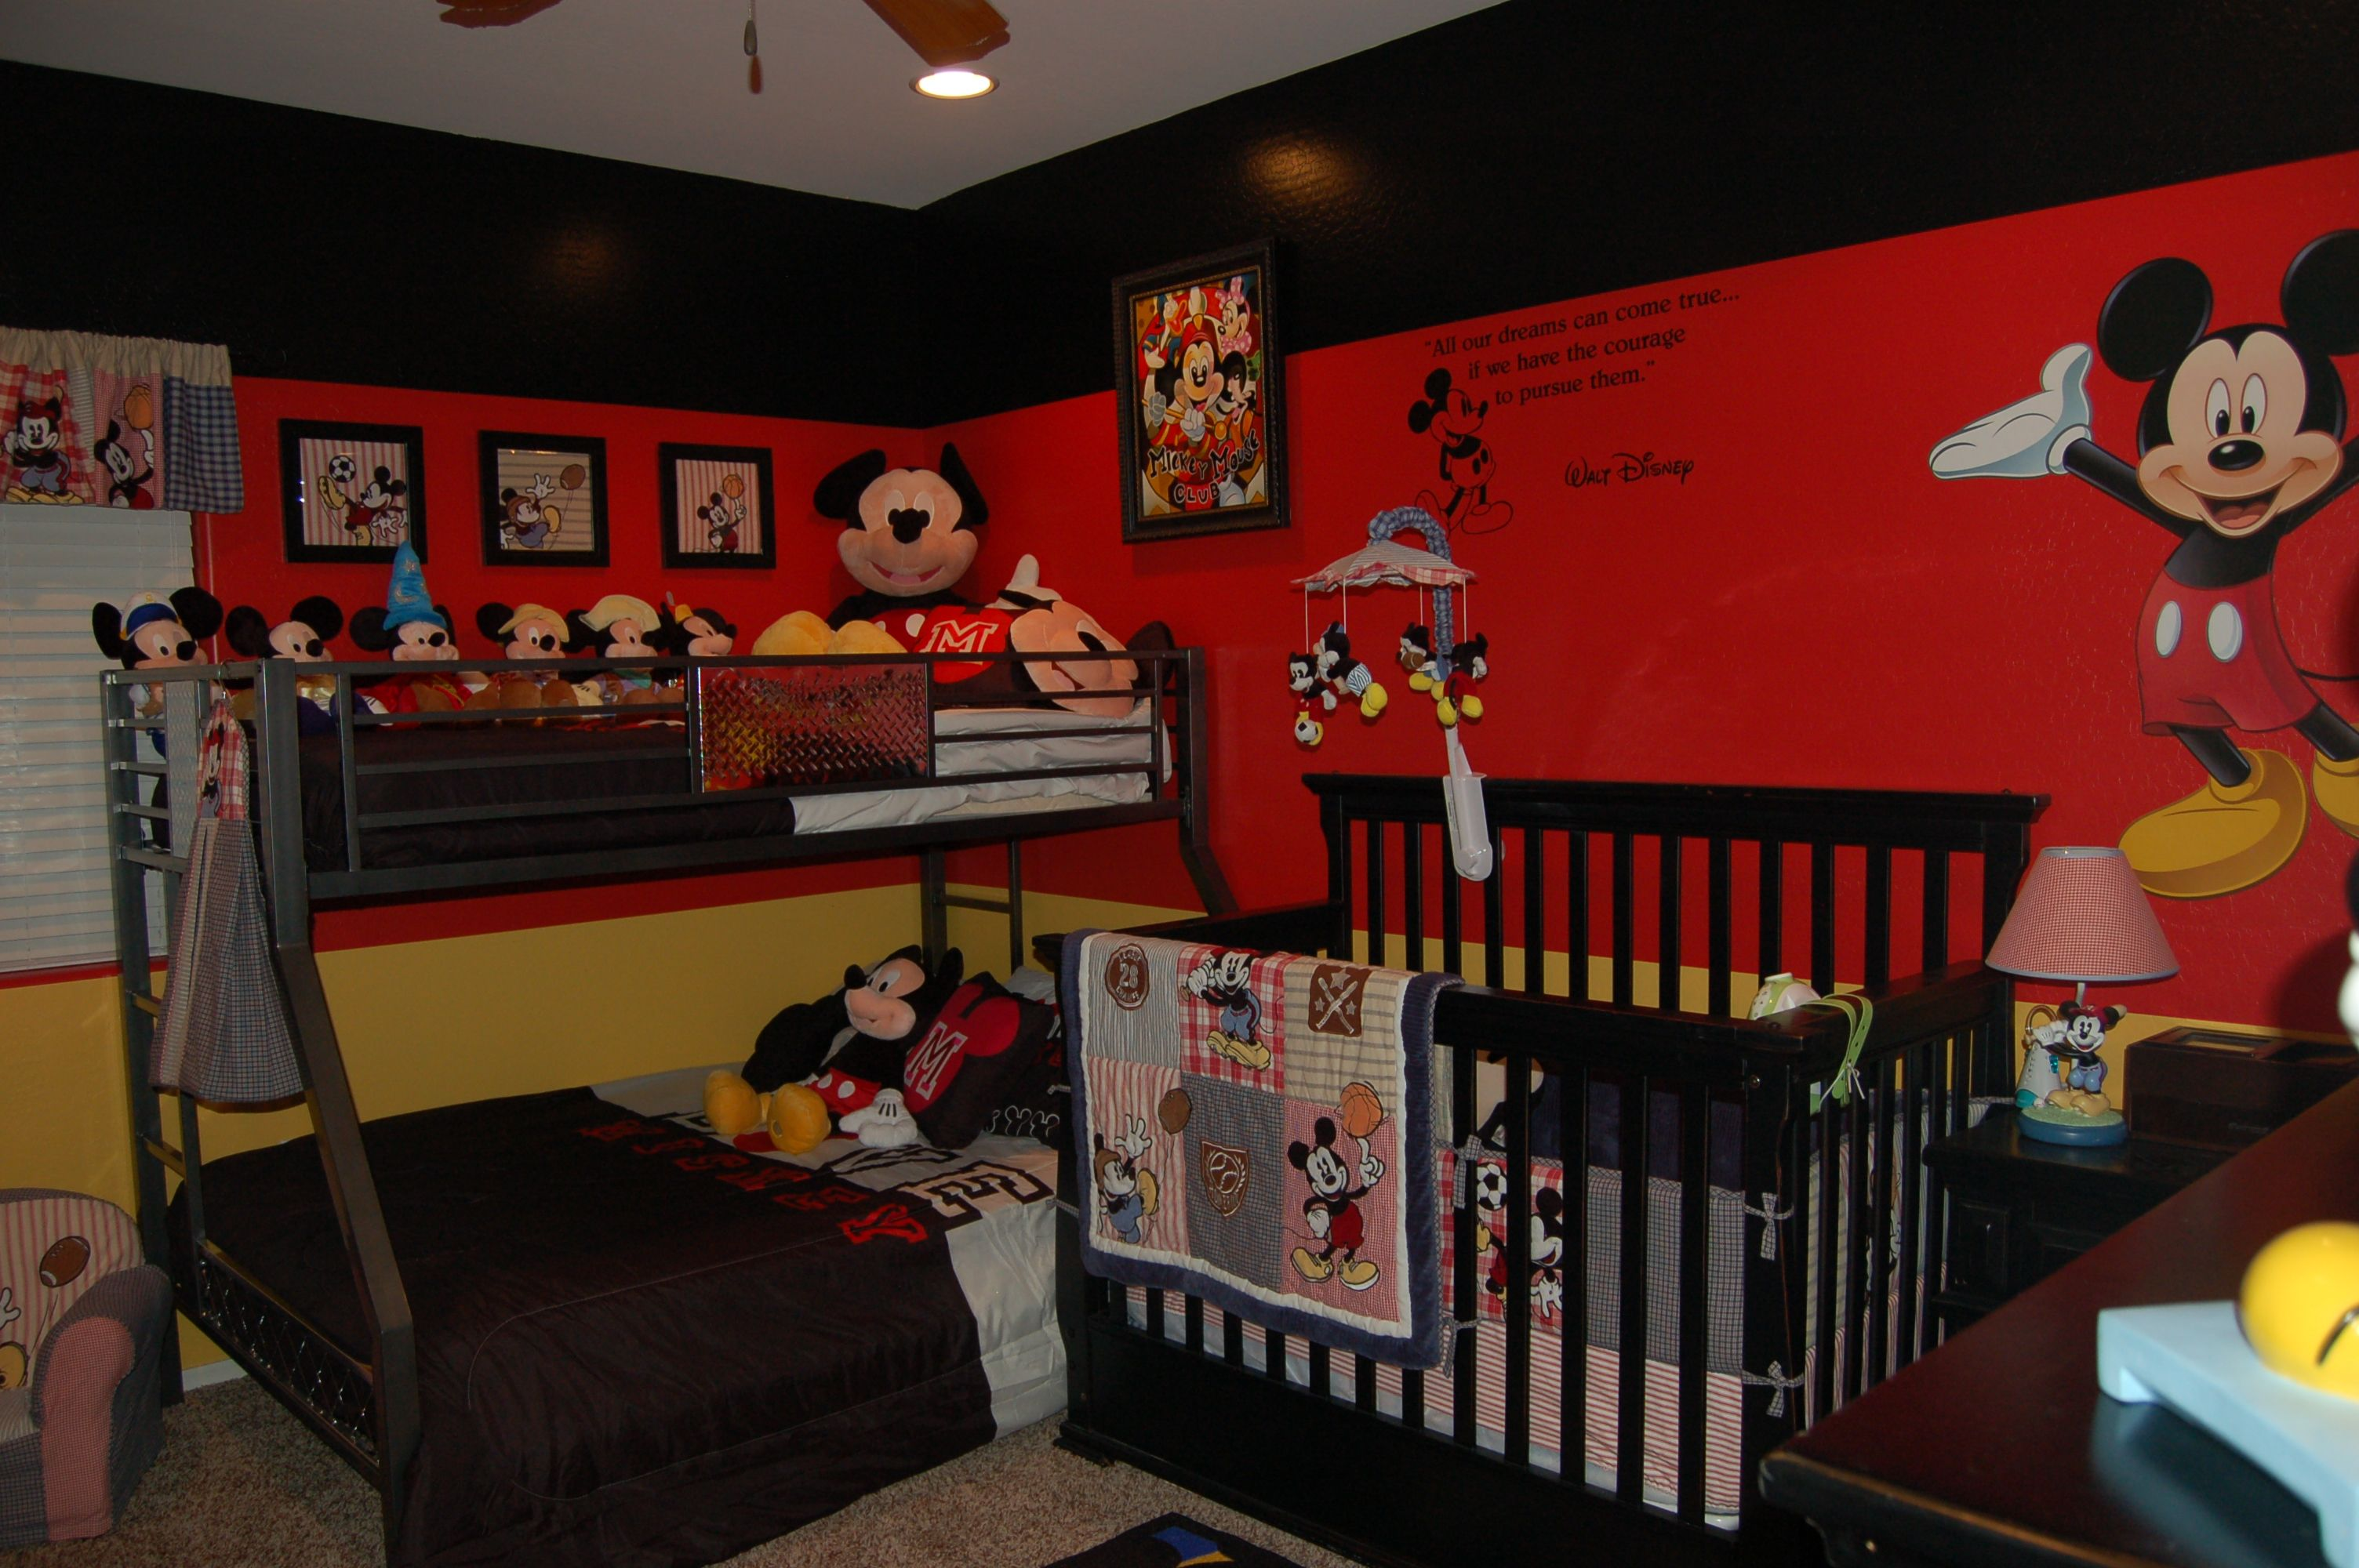 Disney Mickey Mouse Bedroom; Decorating www.mydisneylove.com | My ...